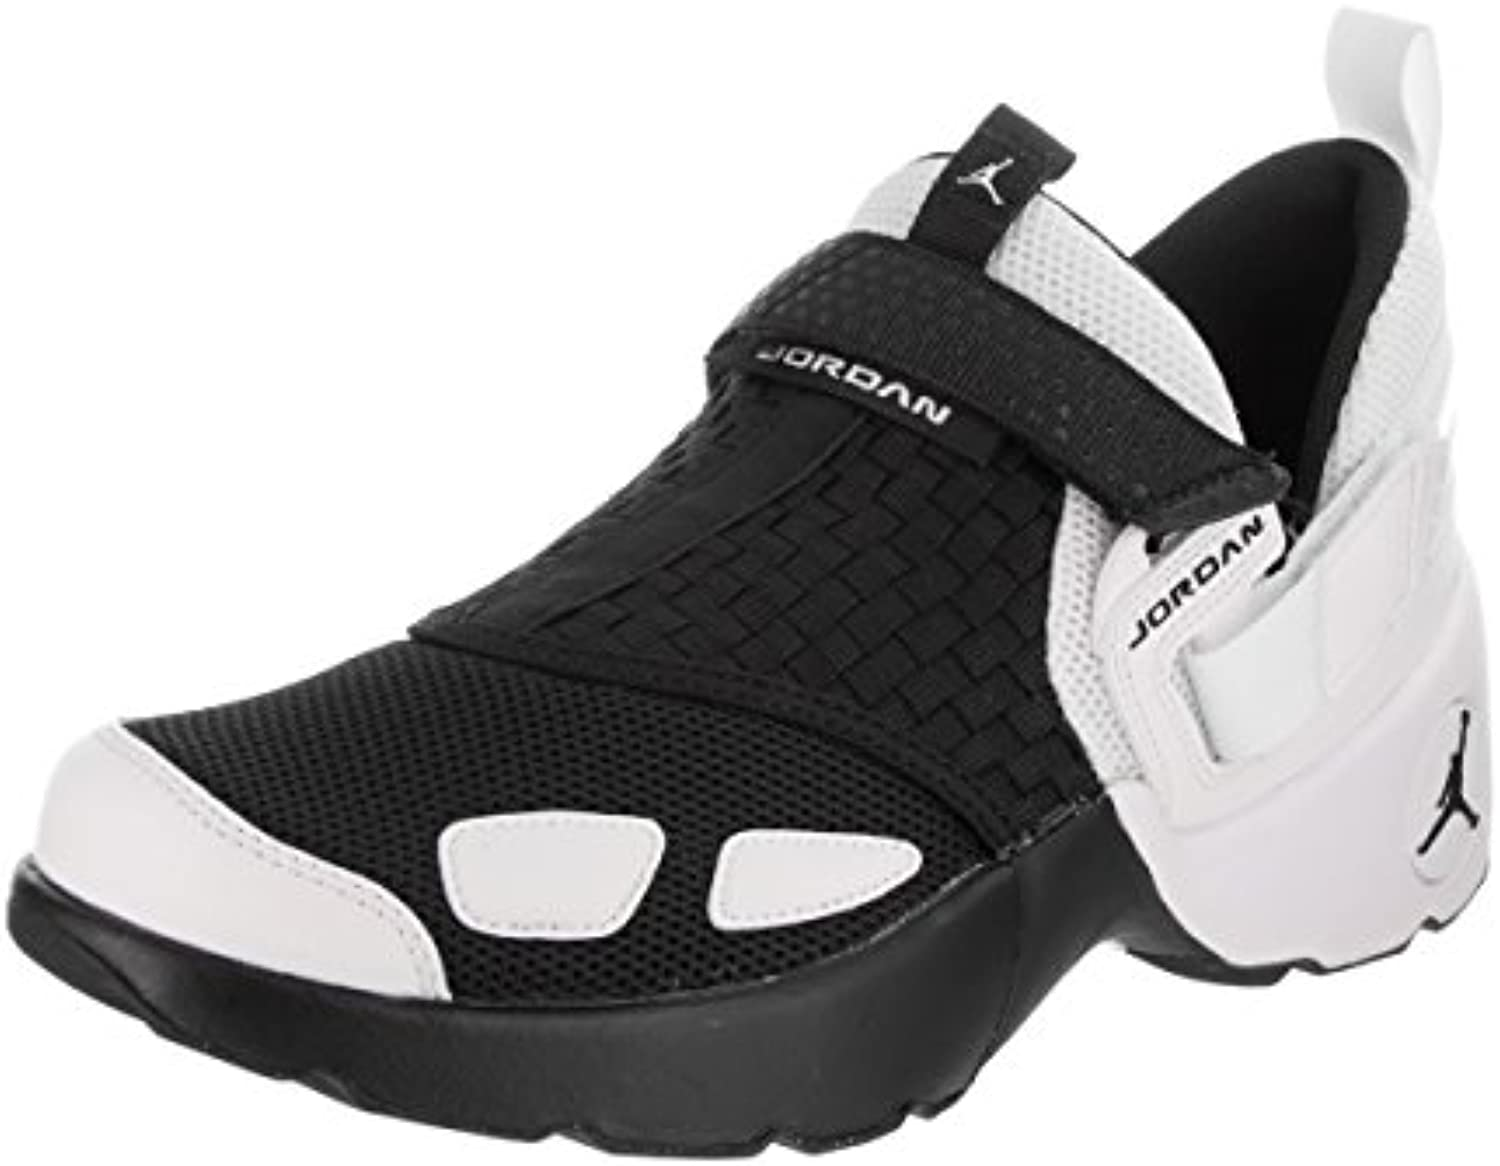 trunner lx   style: 897992     897992-010 taille 9,5 5fe69d